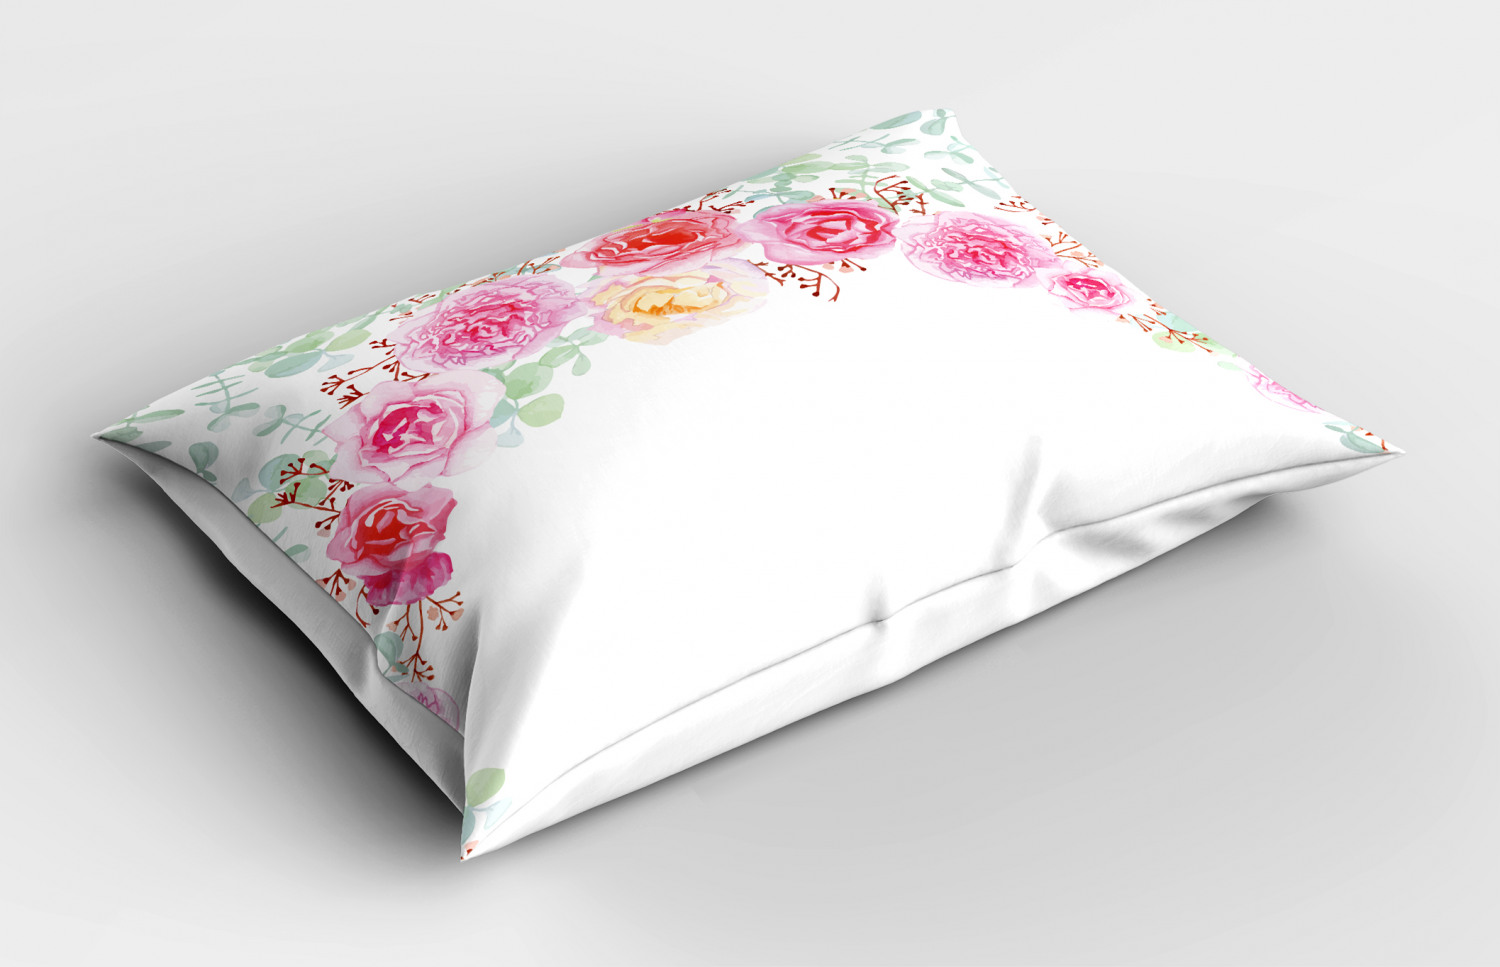 Shabby-Chic-Pillow-Sham-Decorative-Pillowcase-3-Sizes-Bedroom-Decor-Ambesonne thumbnail 21